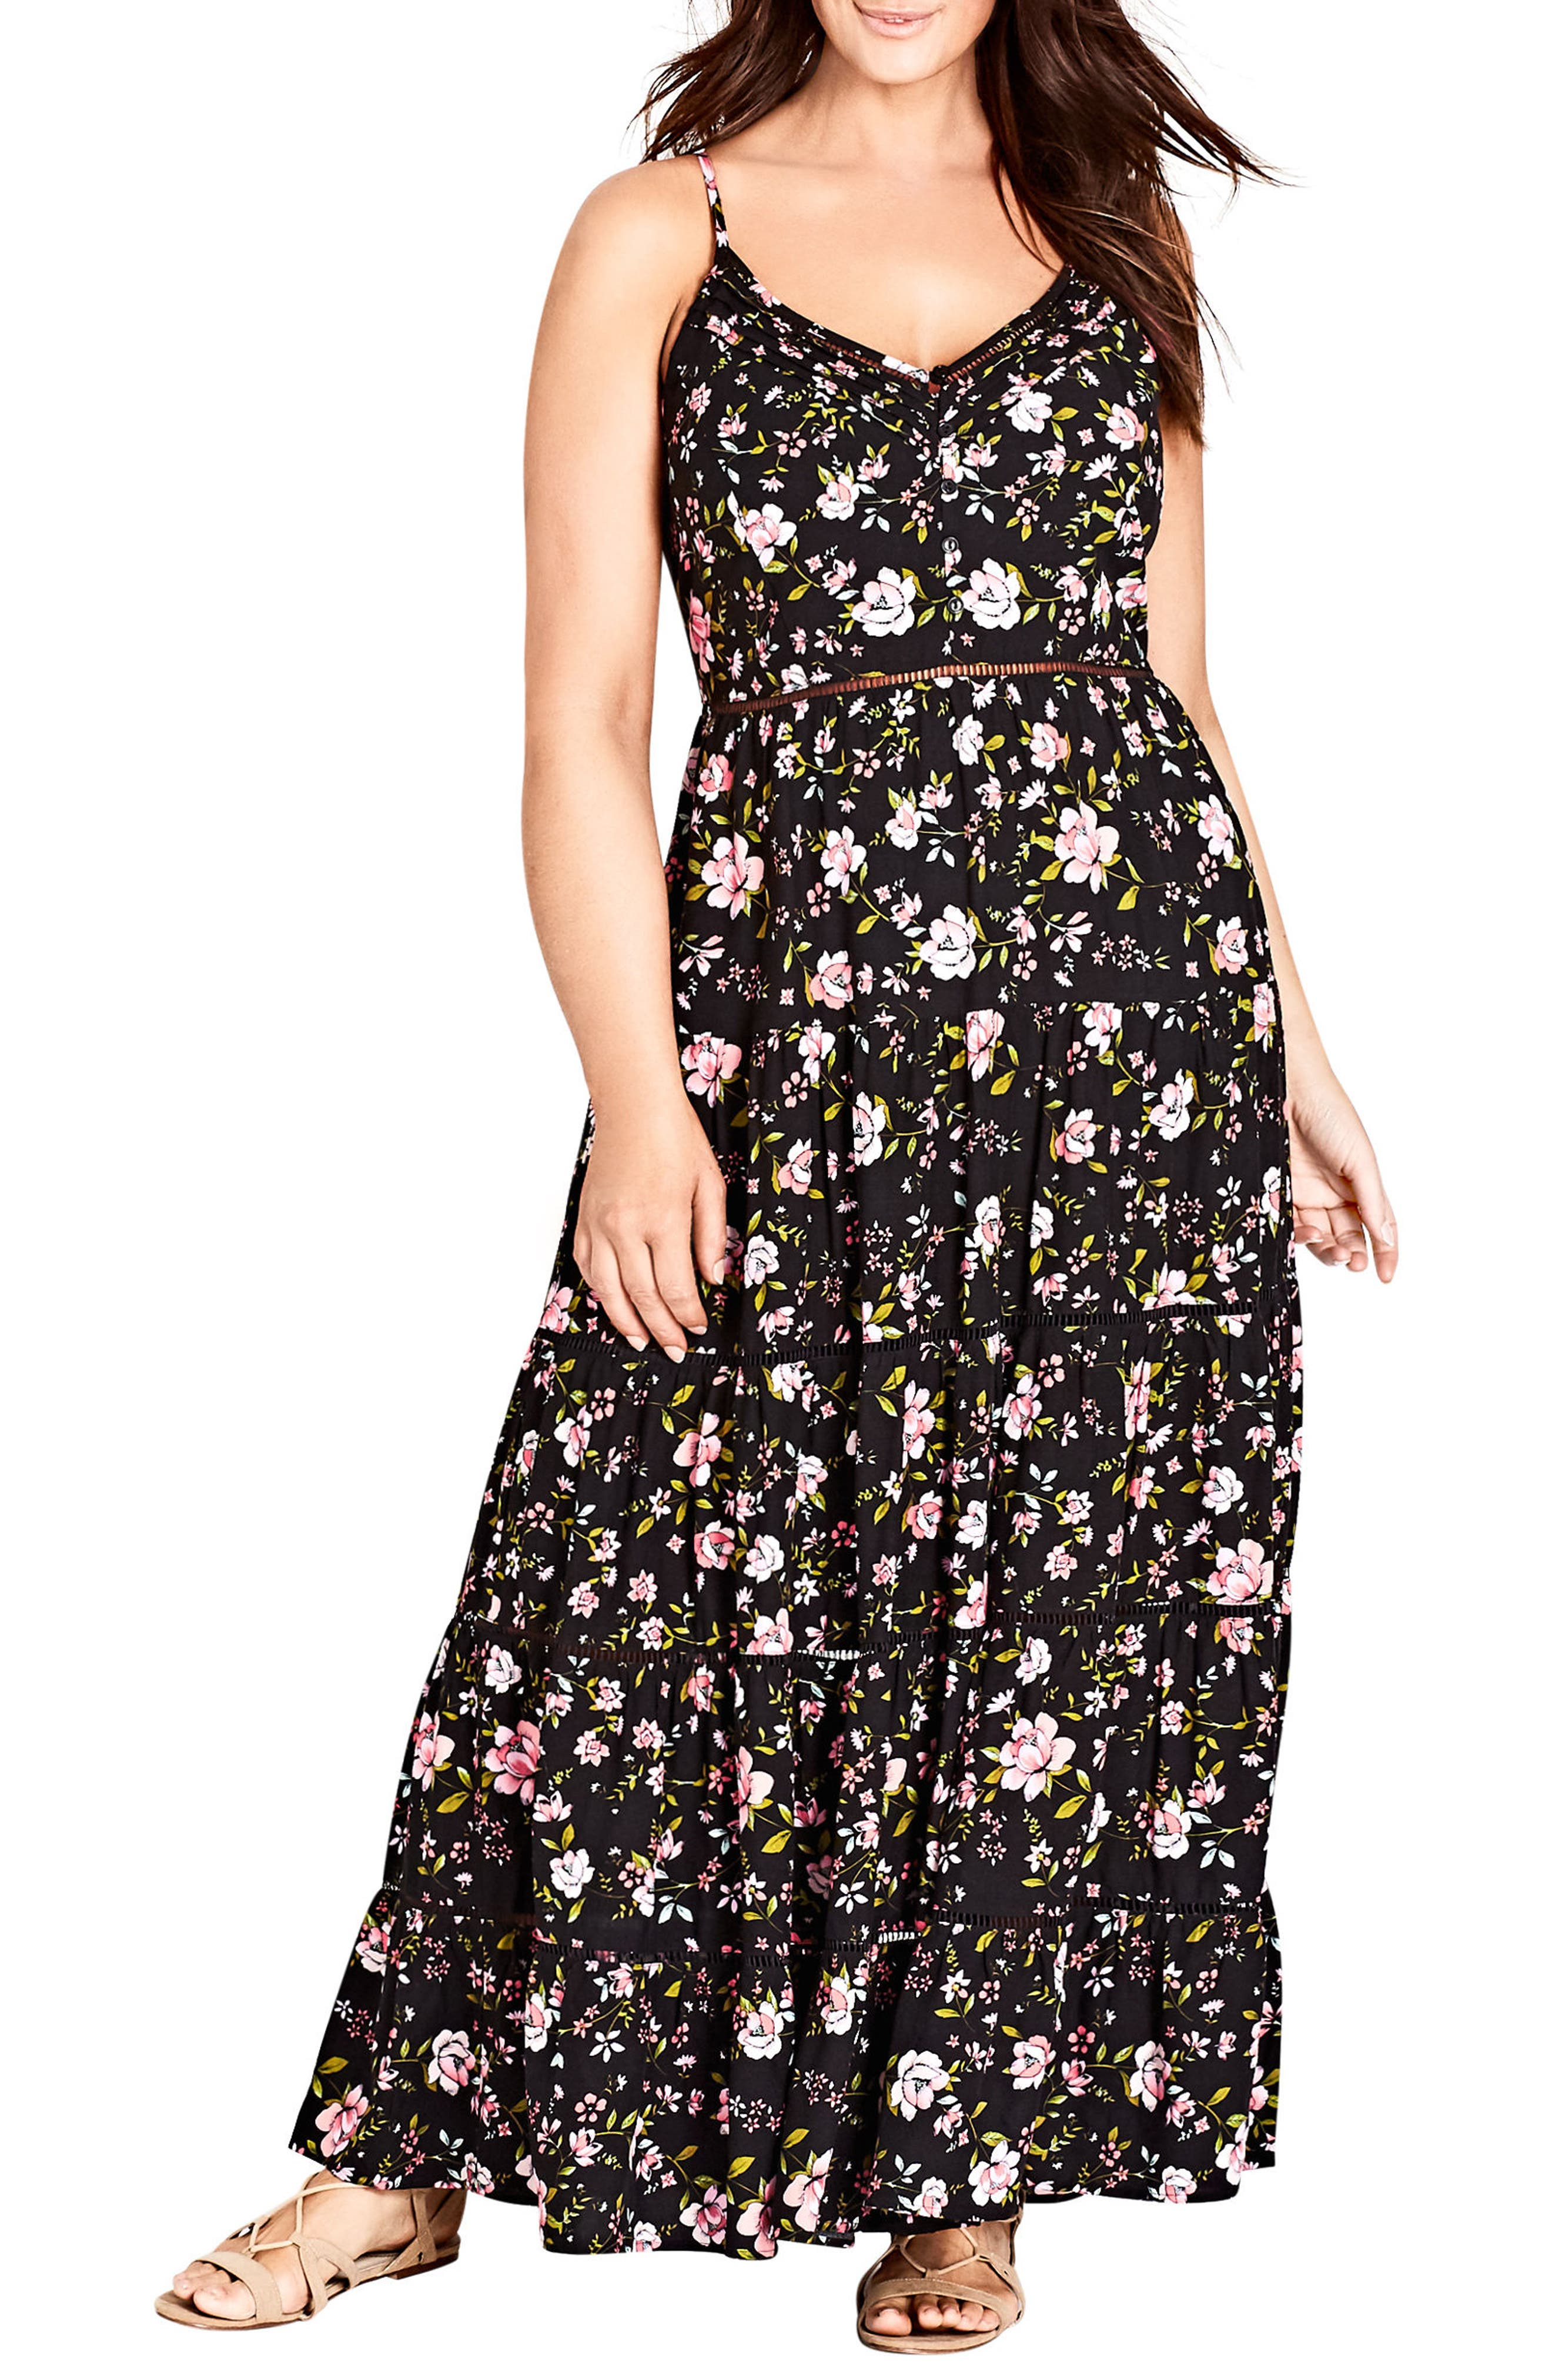 Festival Vibe Maxi Dress,                             Main thumbnail 1, color,                             Black Print